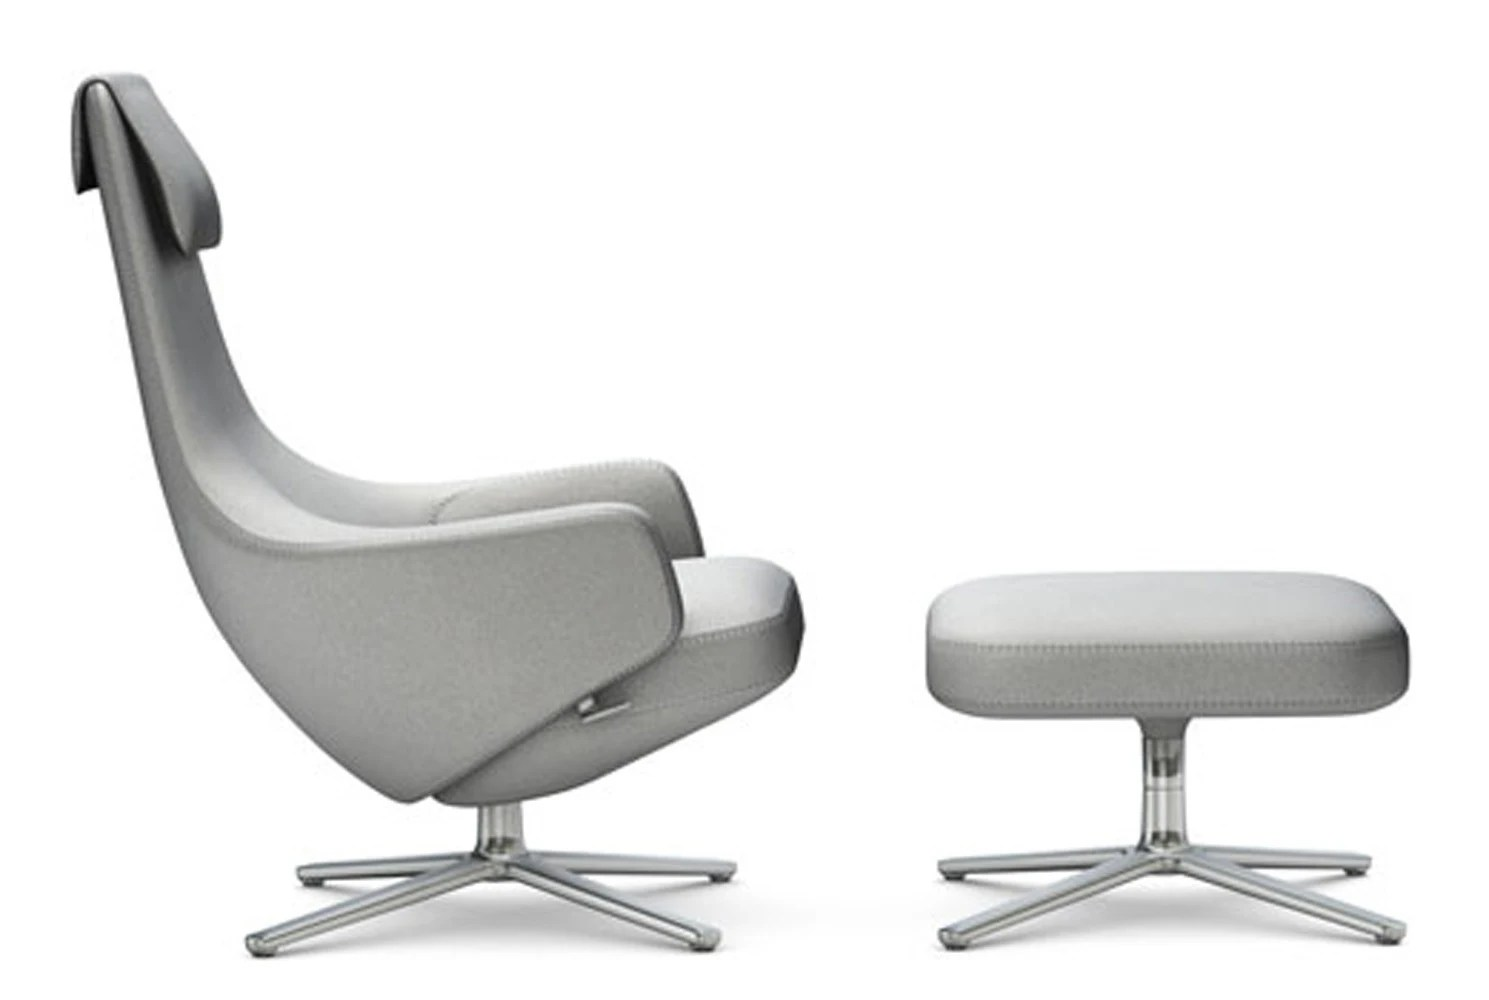 vitra lounge chair beach chairs with umbrellas attached repos and ottoman gr shop canada